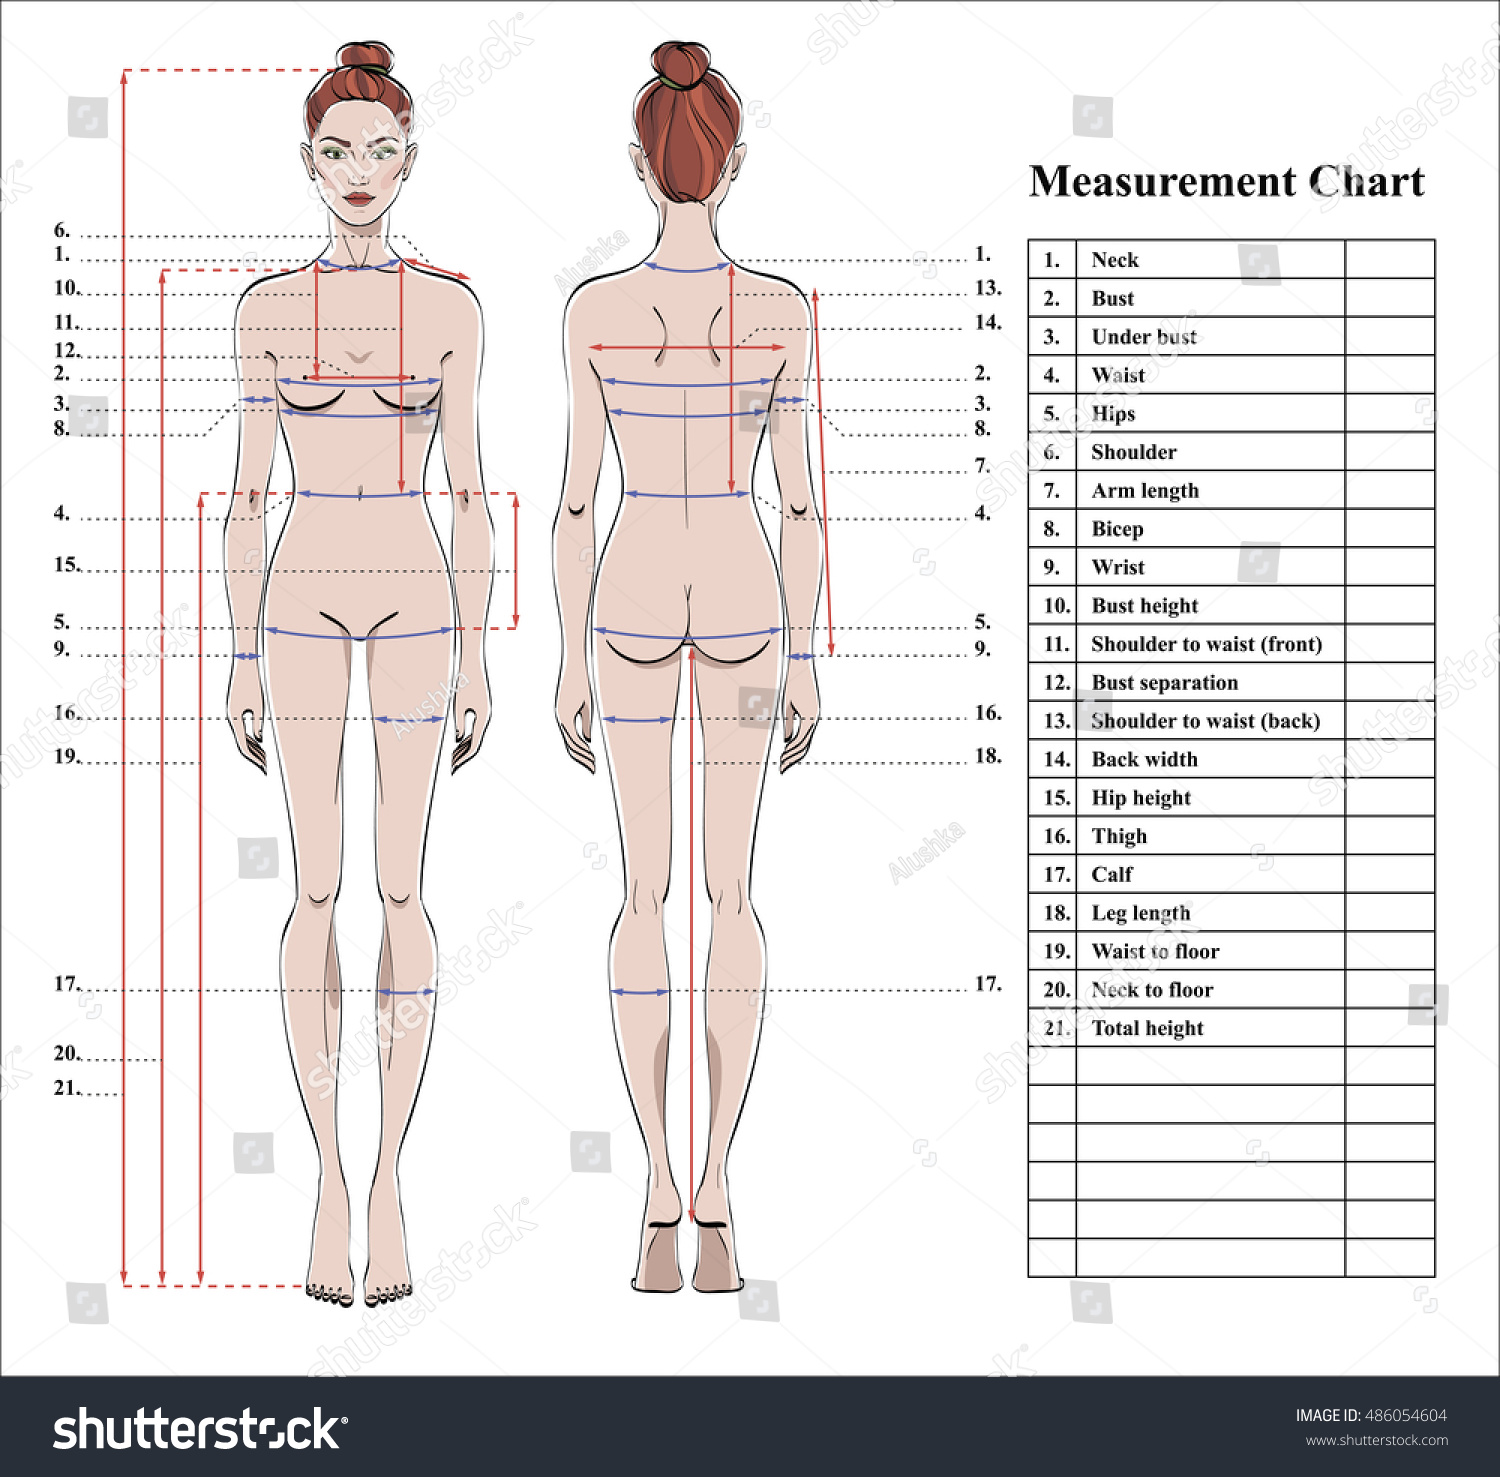 3165f103d Woman body measurement chart. Scheme for measurement human body for sewing  clothes. Female figure  front and back views. Template for dieting